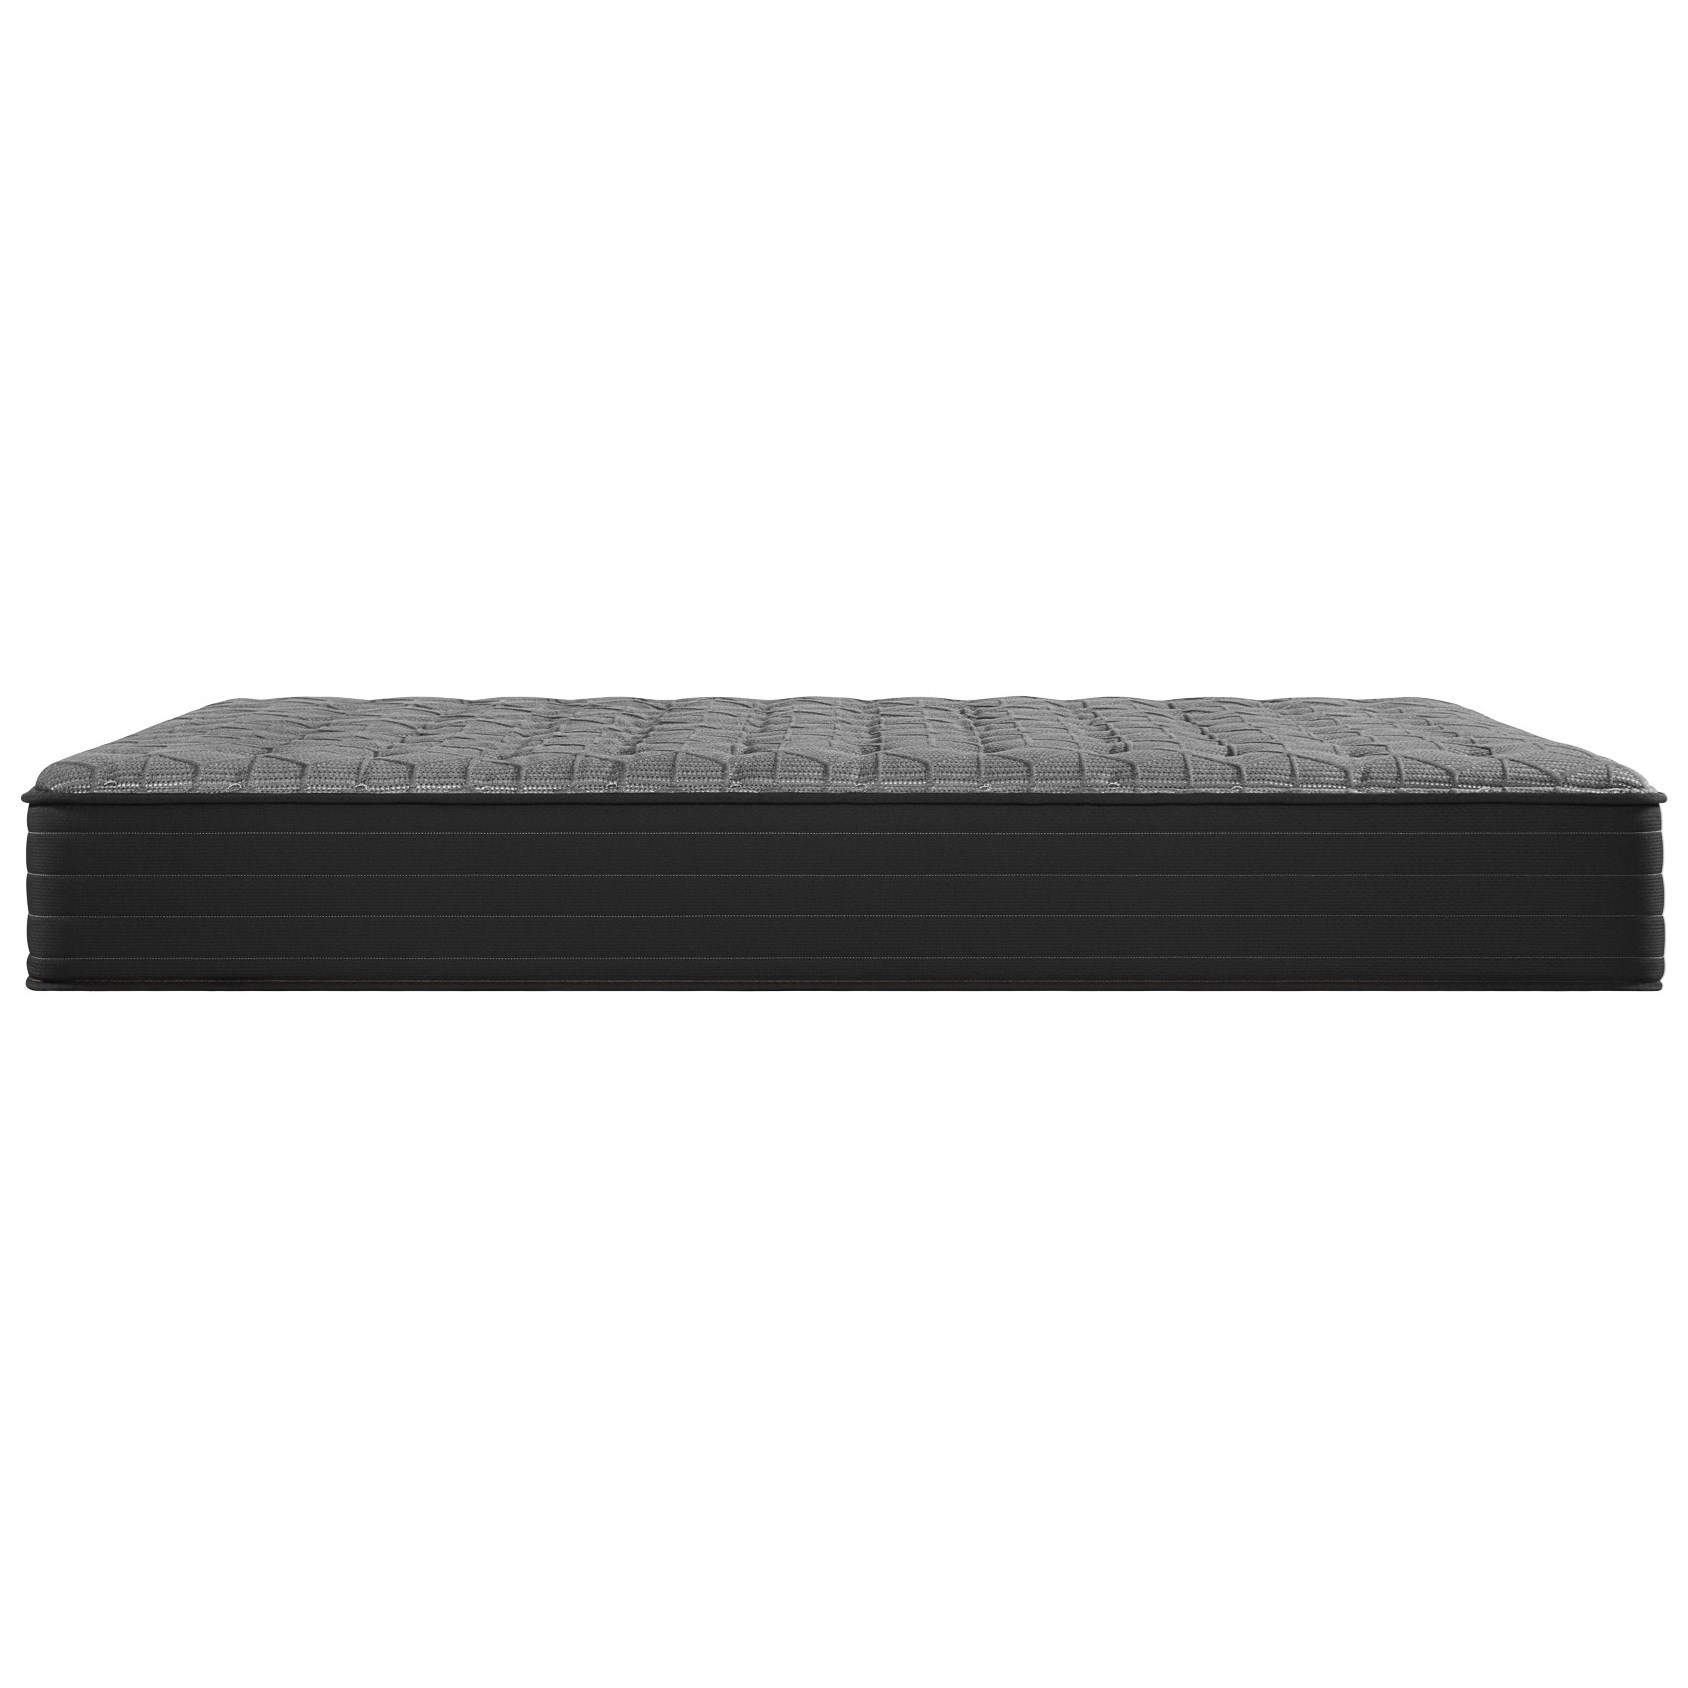 Sealy Response Performance H4 CF Twin Cushion Firm Adjustable Set by Sealy at Furniture Barn